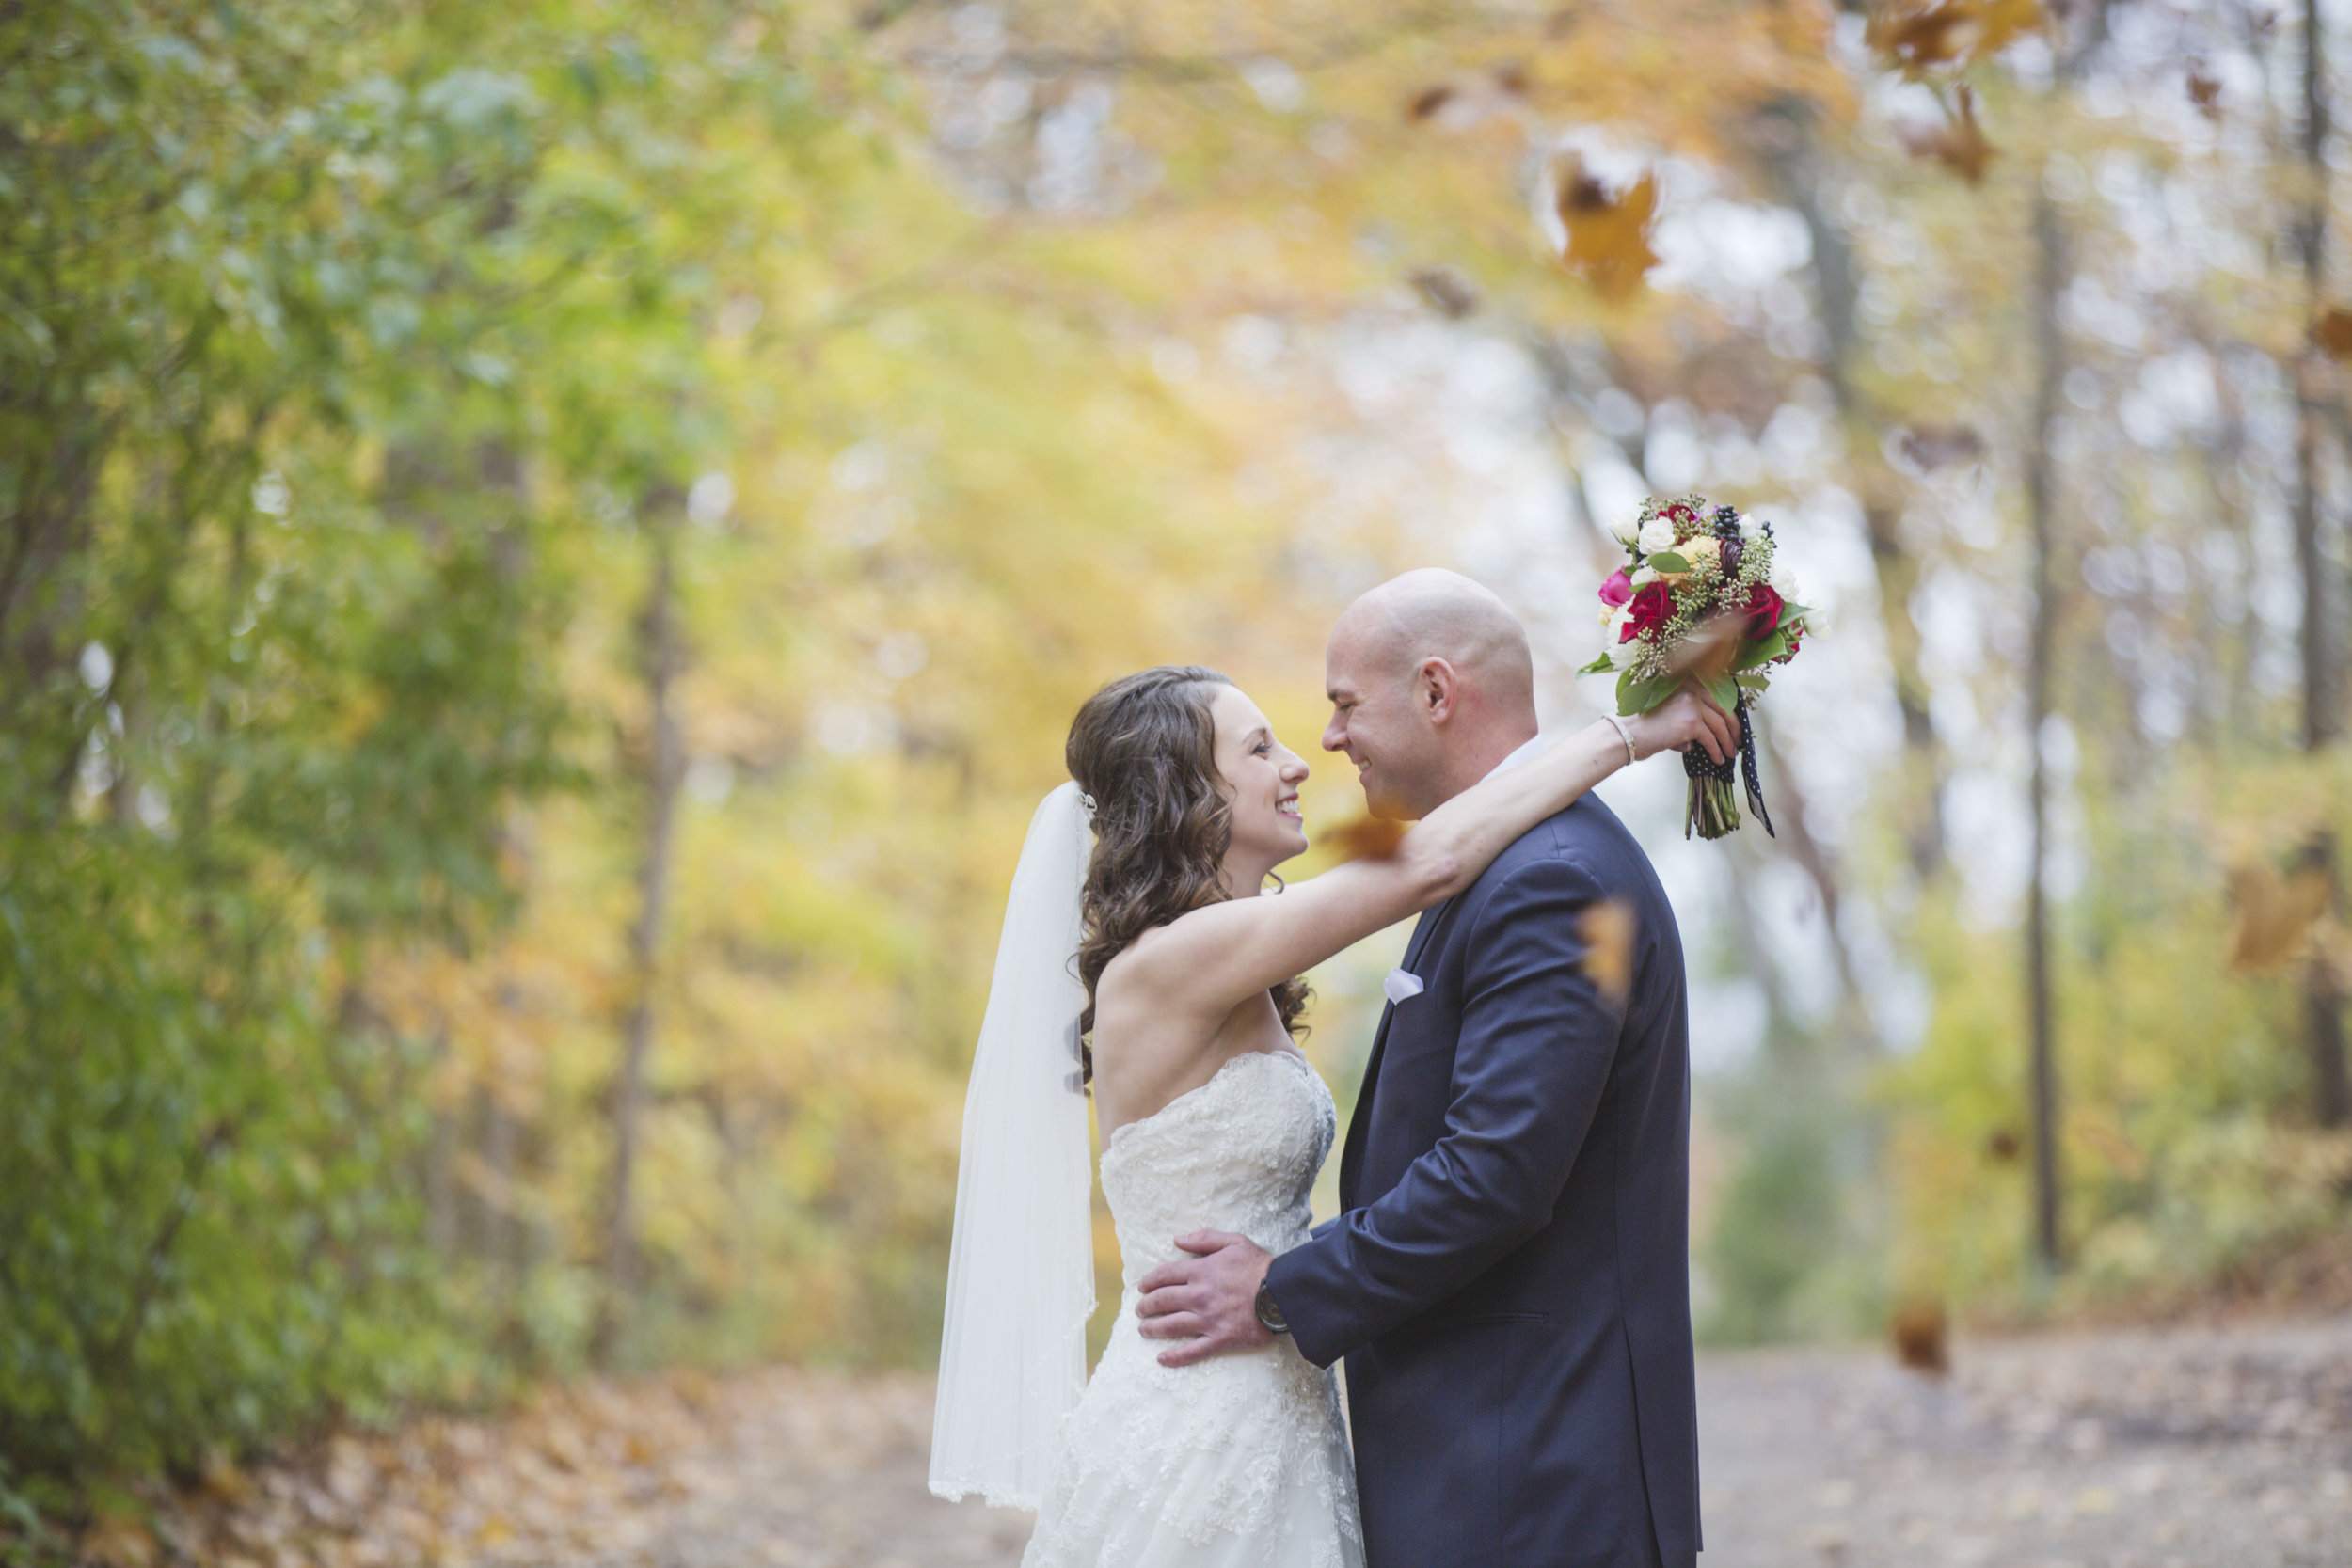 Nicole + Dan at The Ridge (October 28th, 2017)